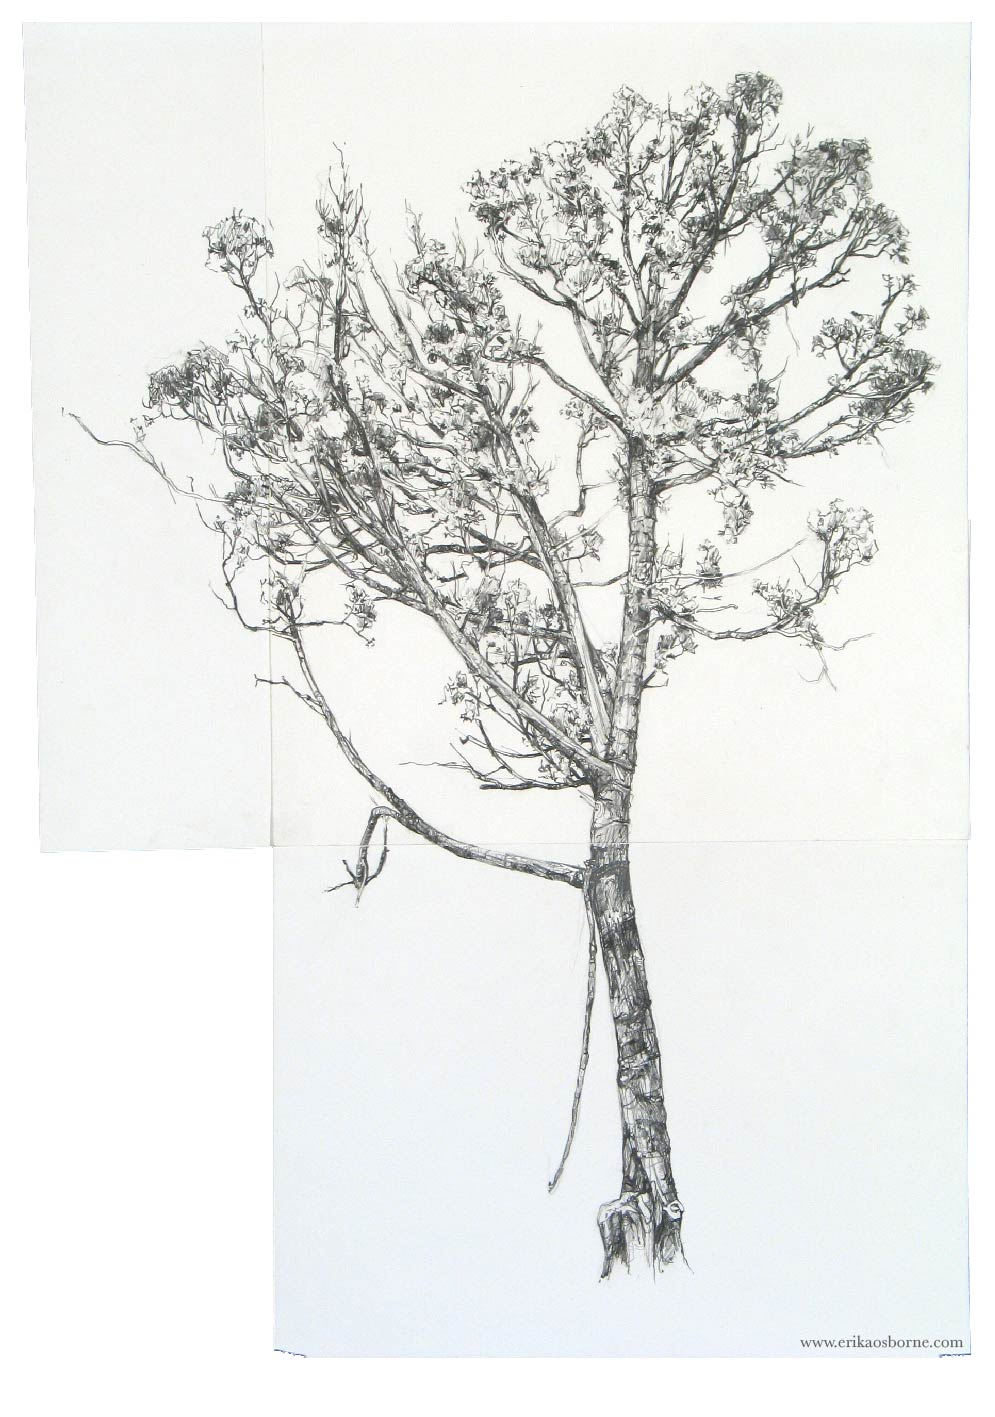 9 Hours Drawing. Jumping To Keep Toes Warm. These Trees Are Marked For  Cutting. A Fuel Break, Maybe In Spring ...